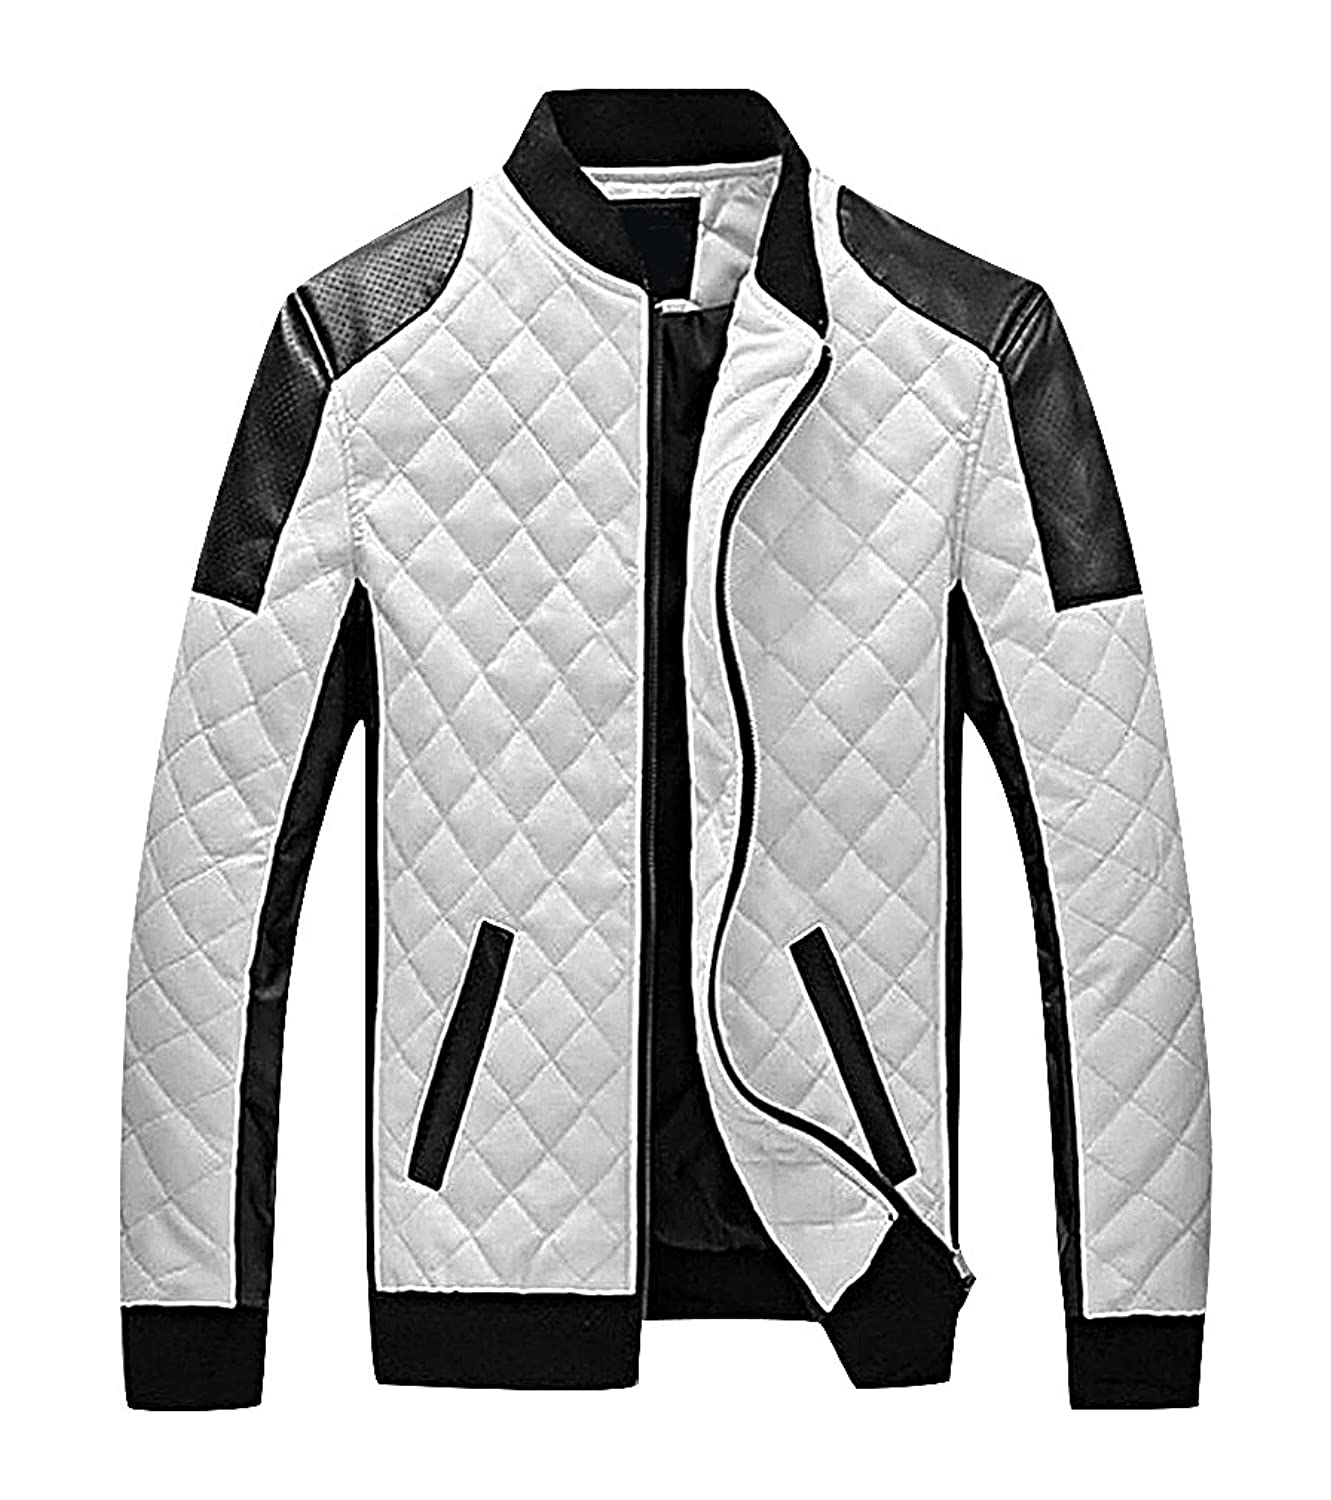 Men24 Men's Black White Panelled Elastic Cuff Rhombic Quilts Fake Leather Jacket